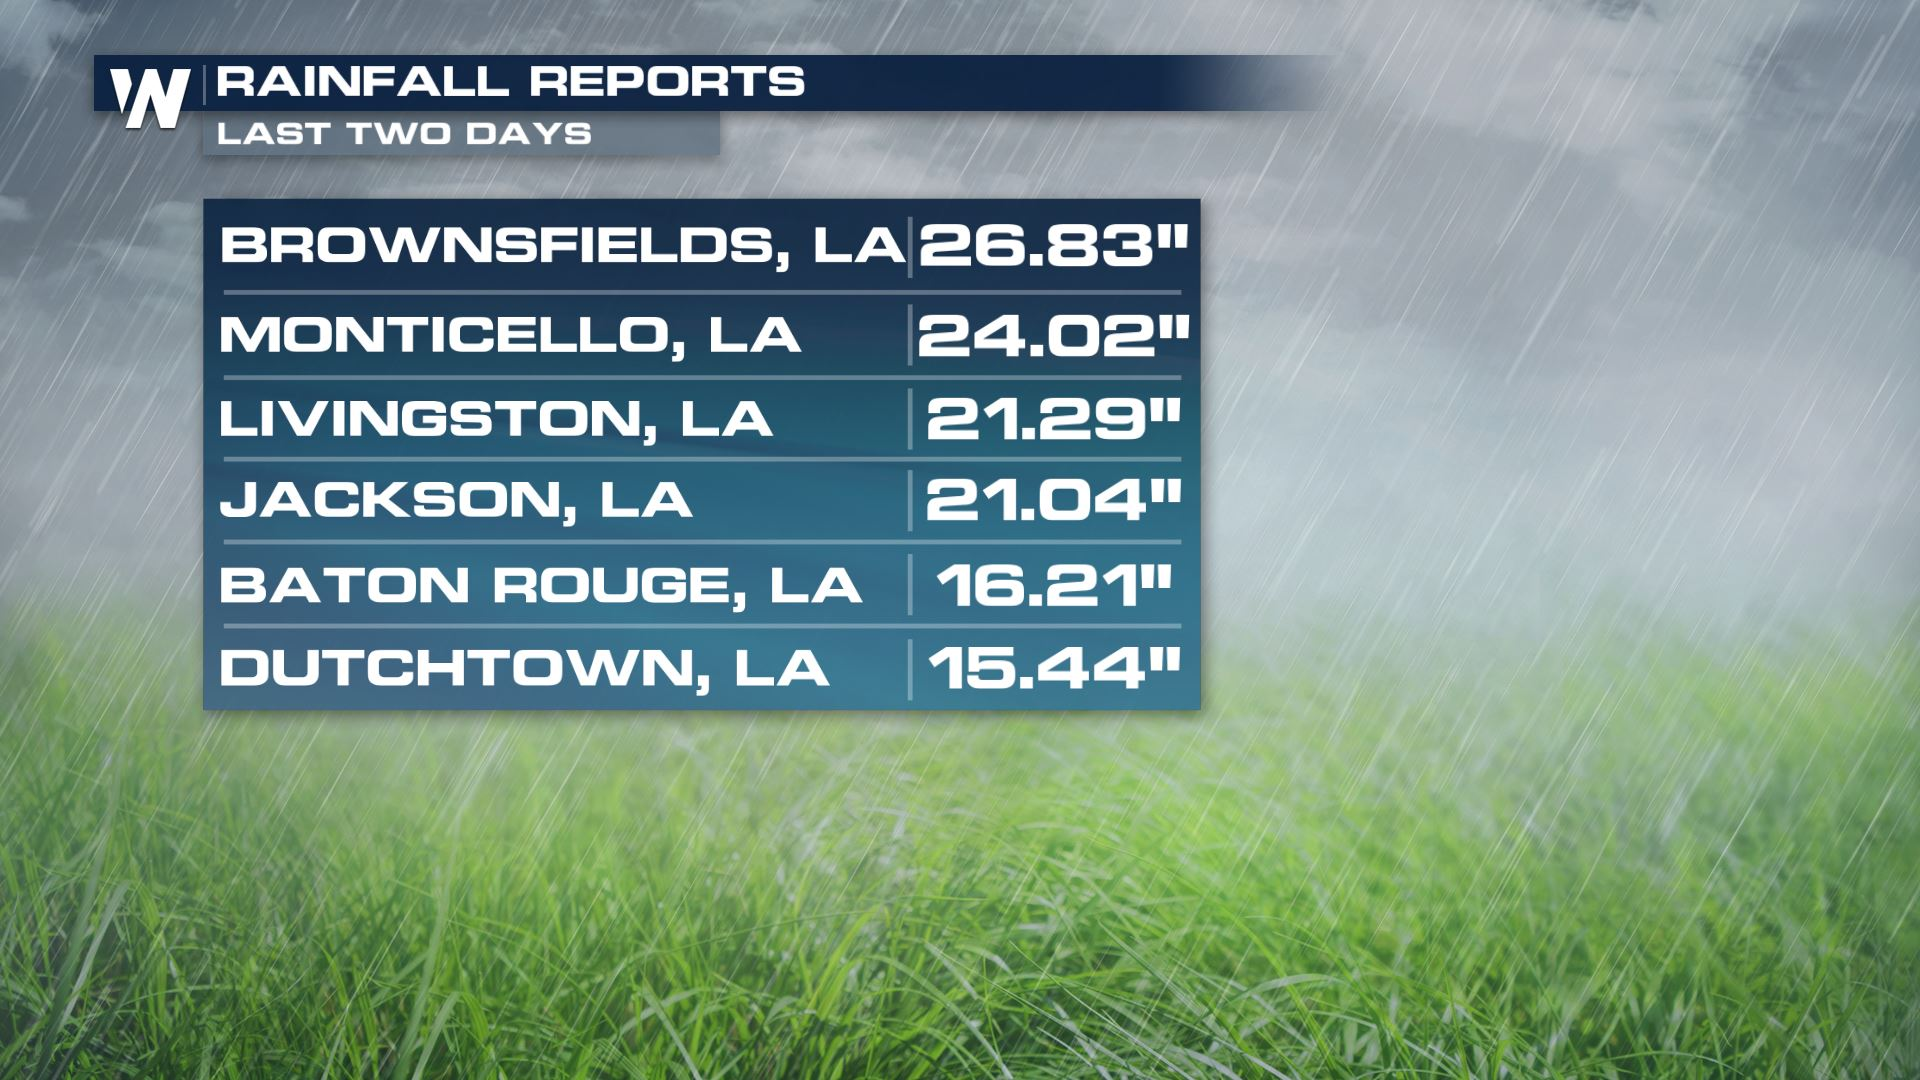 LA Rainfall Totals 2days